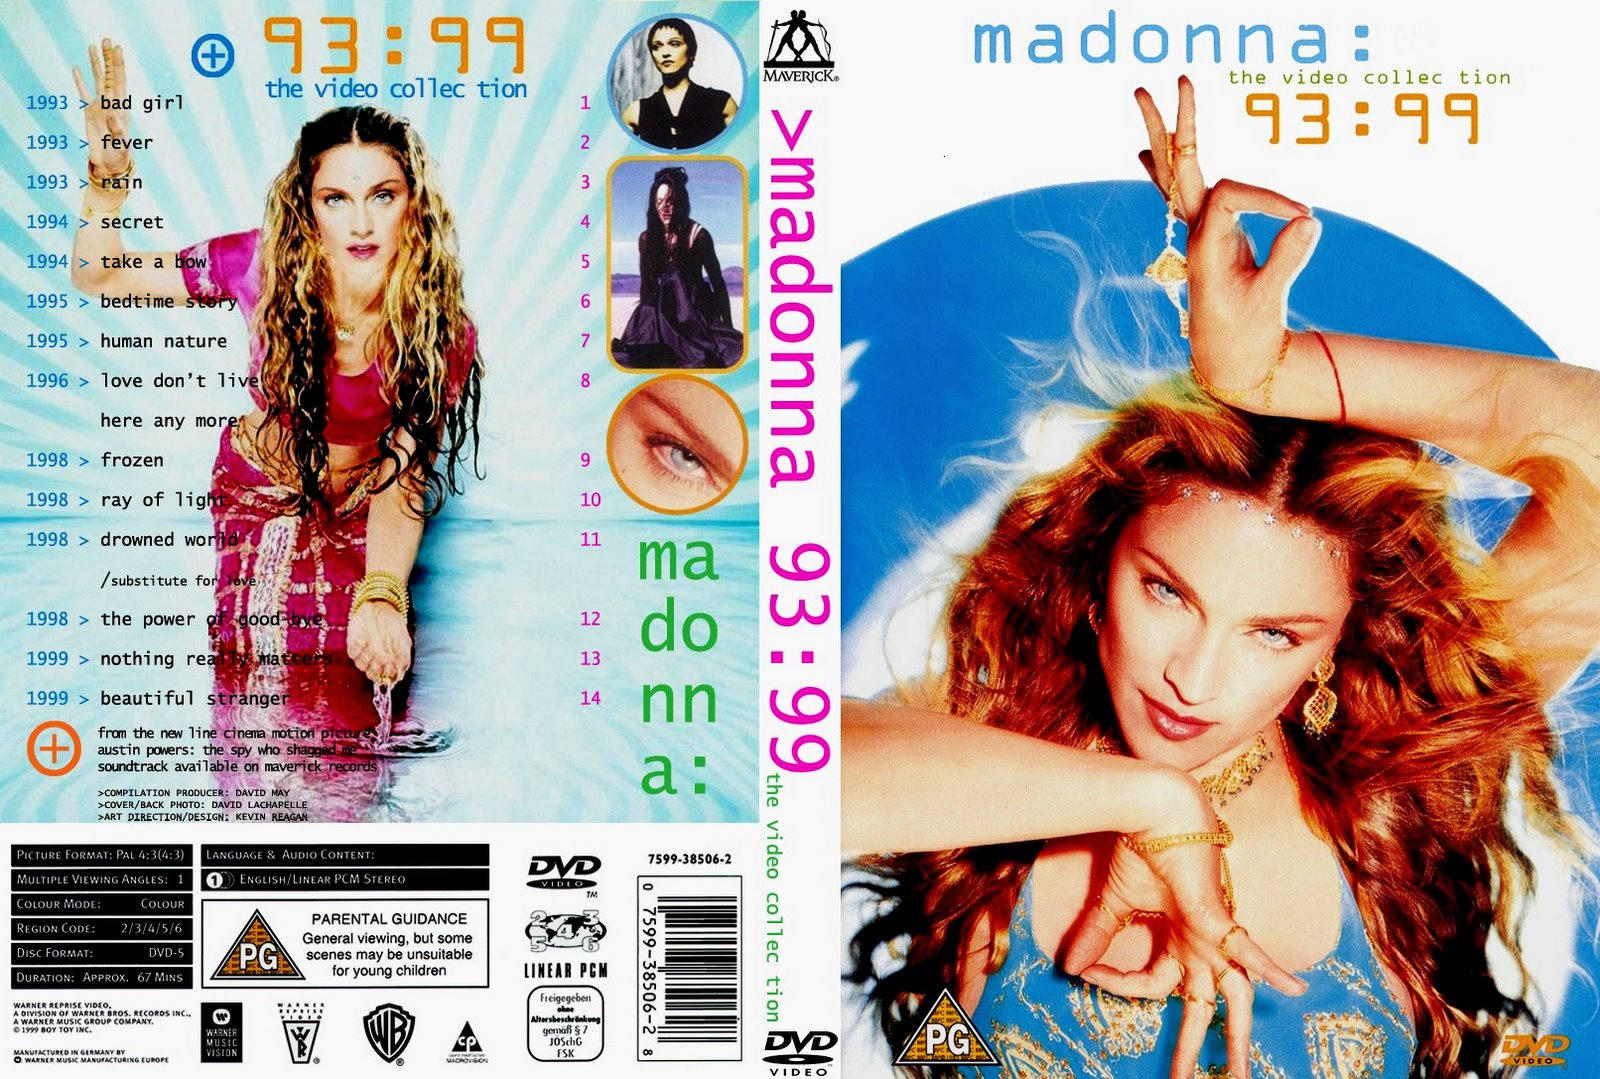 http://3.bp.blogspot.com/-UpNTgHcj9sA/UCzzRWKPkwI/AAAAAAAADLo/f-P_3LV-TPw/s1600/Madonna_-_The_Video_Colection_93_99.jpg